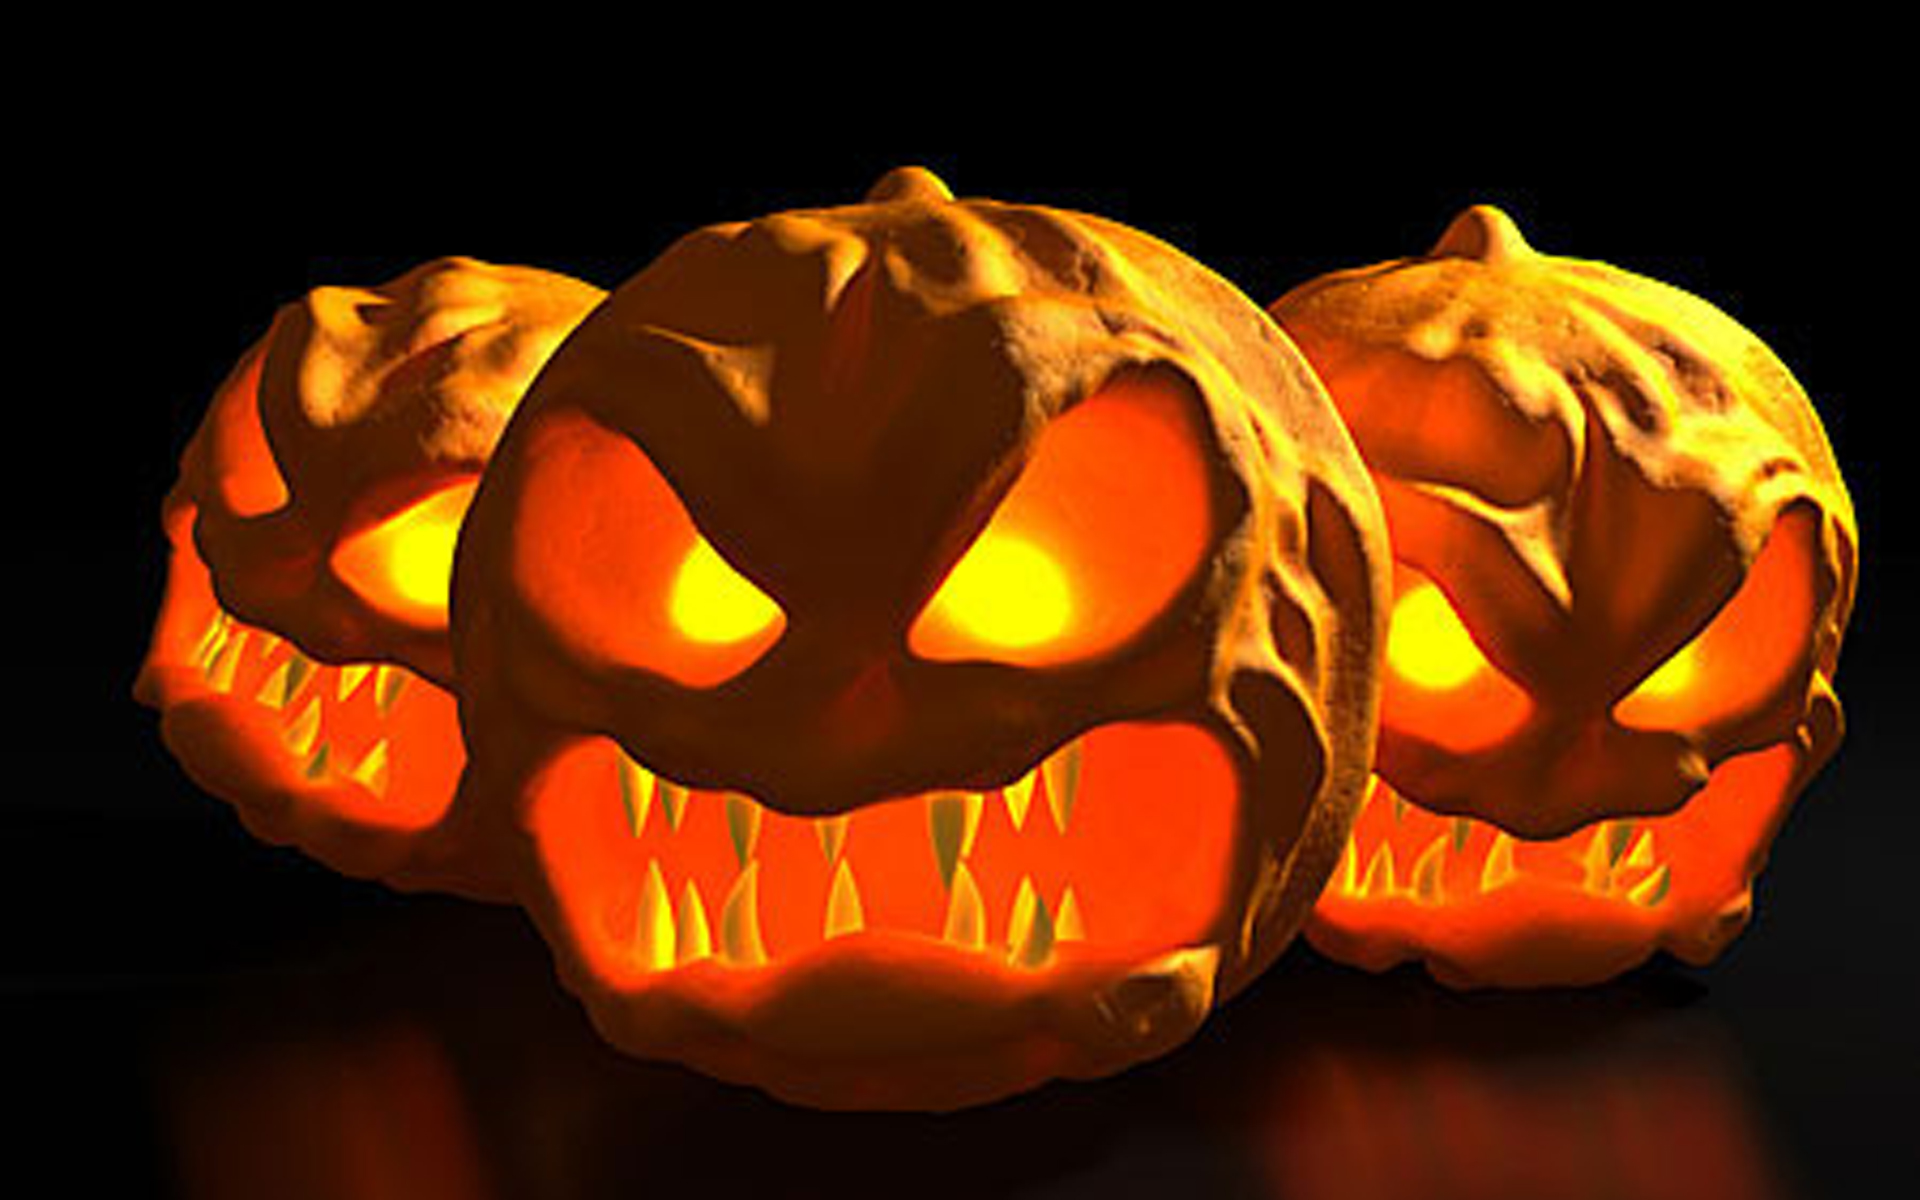 Scary fangs halloween pumpkin carving creative ads and more Pumpkin carving designs photos